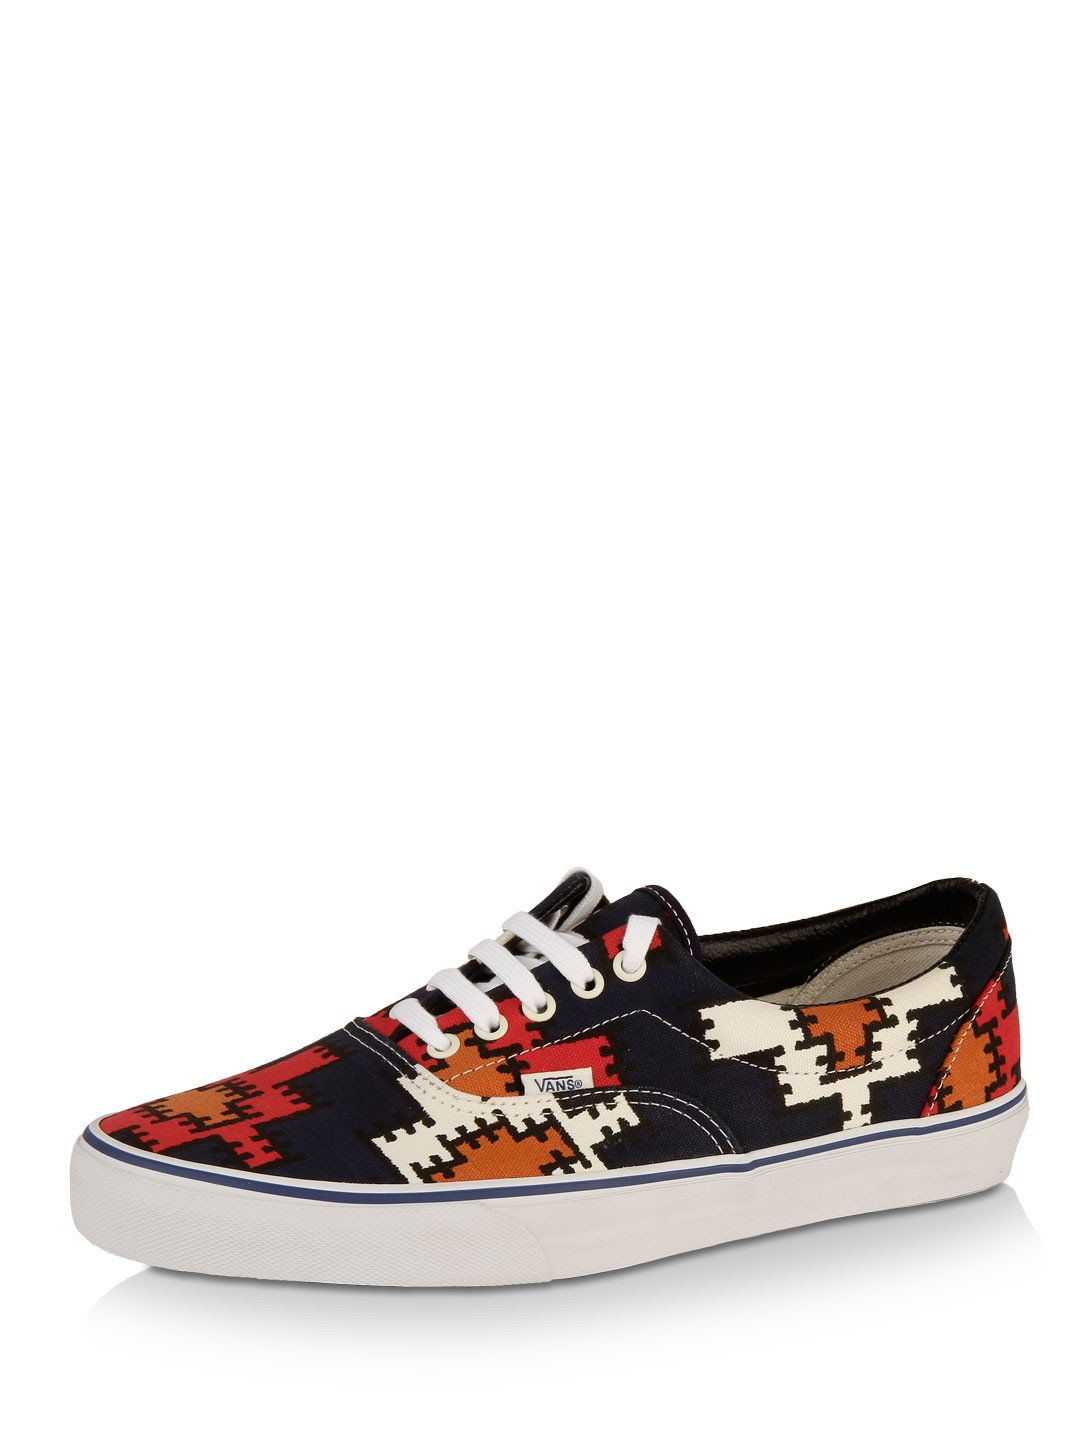 Shop Vans Shoes Online India